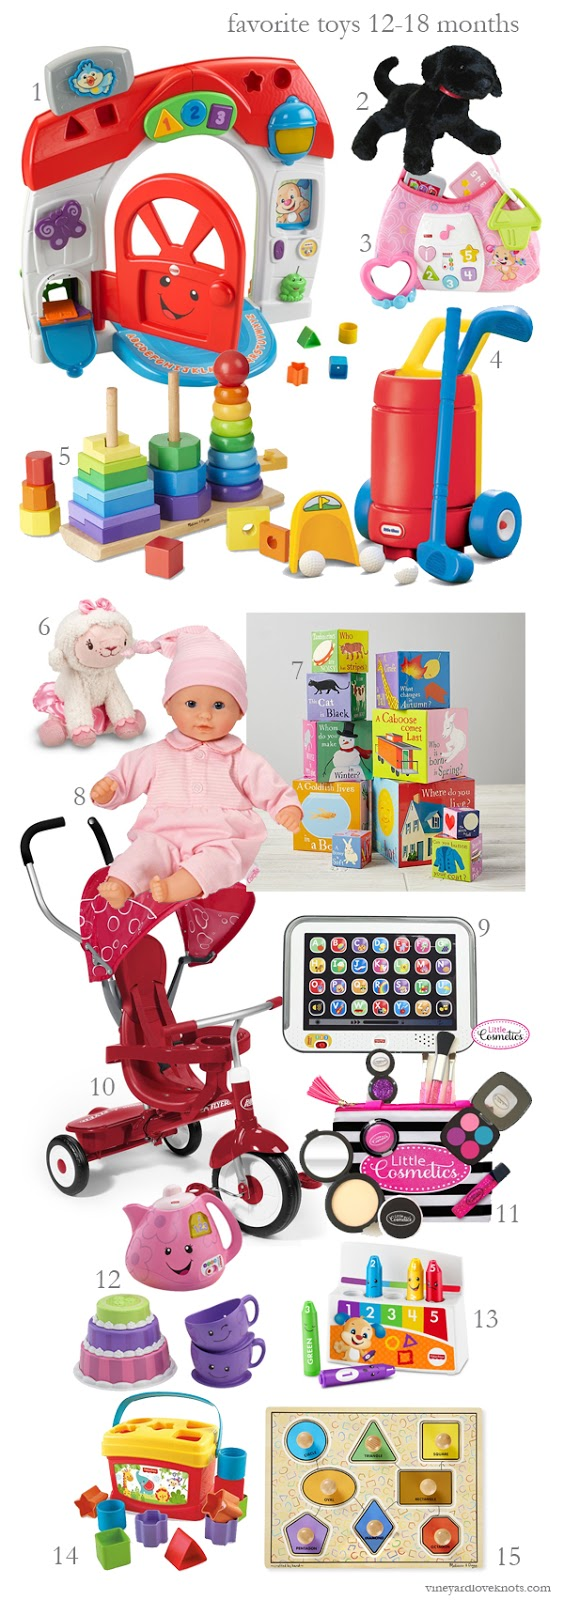 12 To 18 Month Toys : Gift guide favorite toys for months vineyard